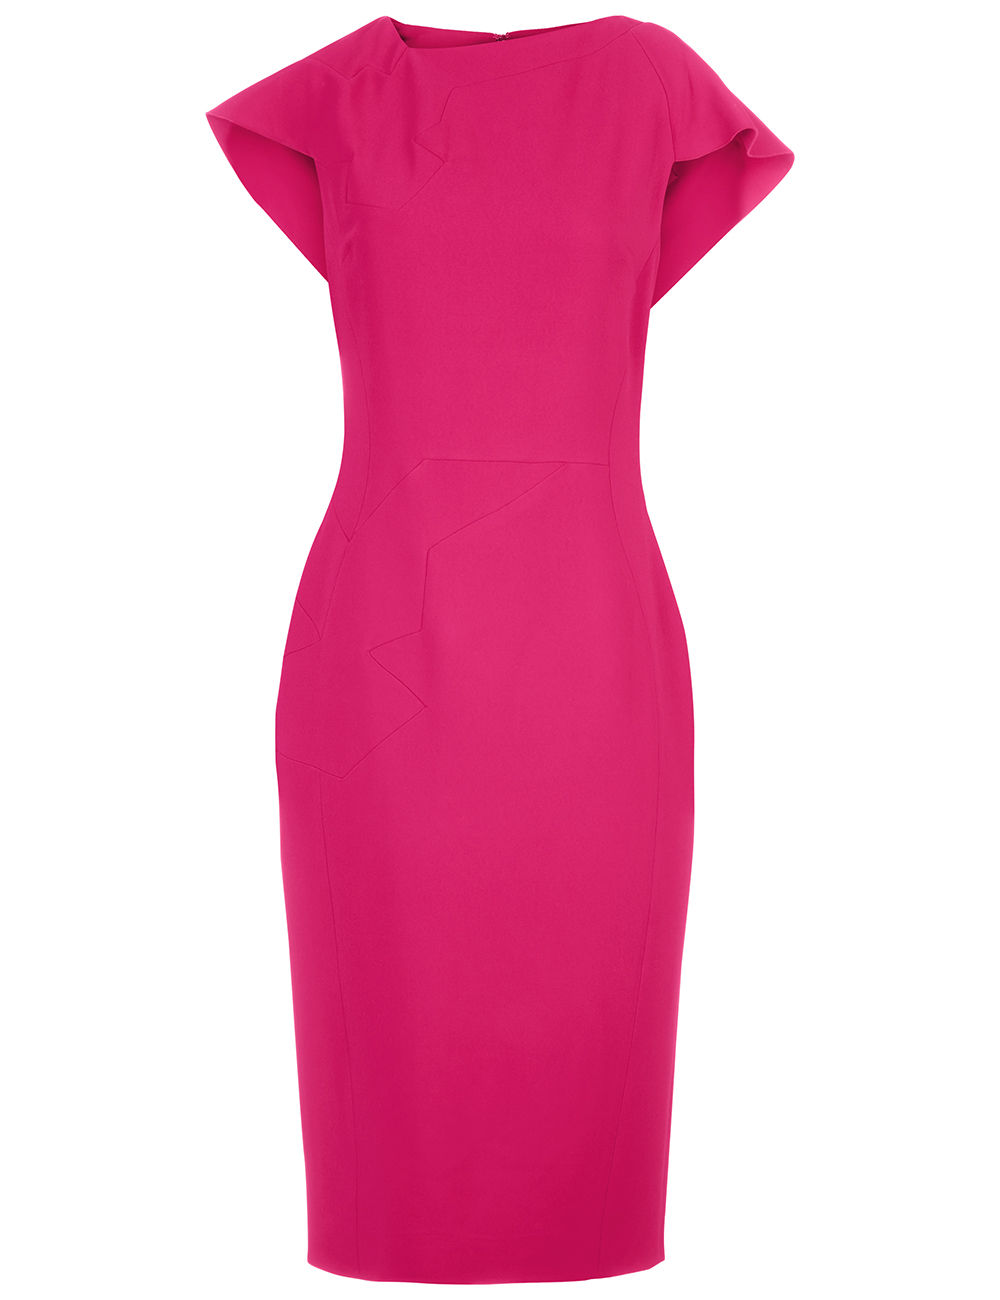 Antonio Berardi - Raspberry Cape Sleeve Midi Dress